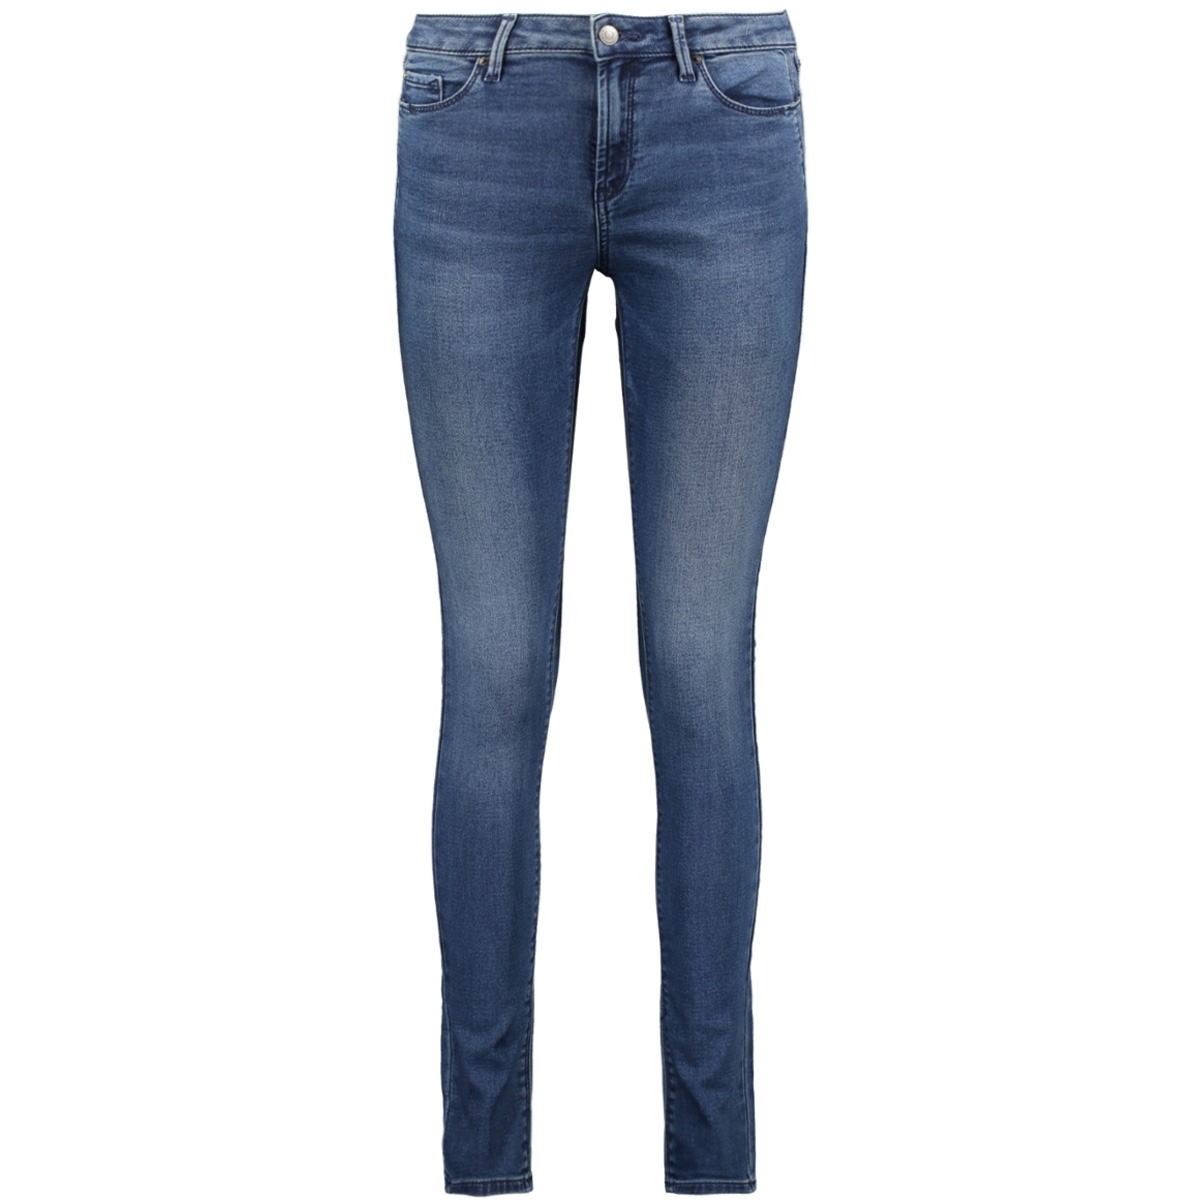 skinny jeans 999ee1b805 esprit jeans e901